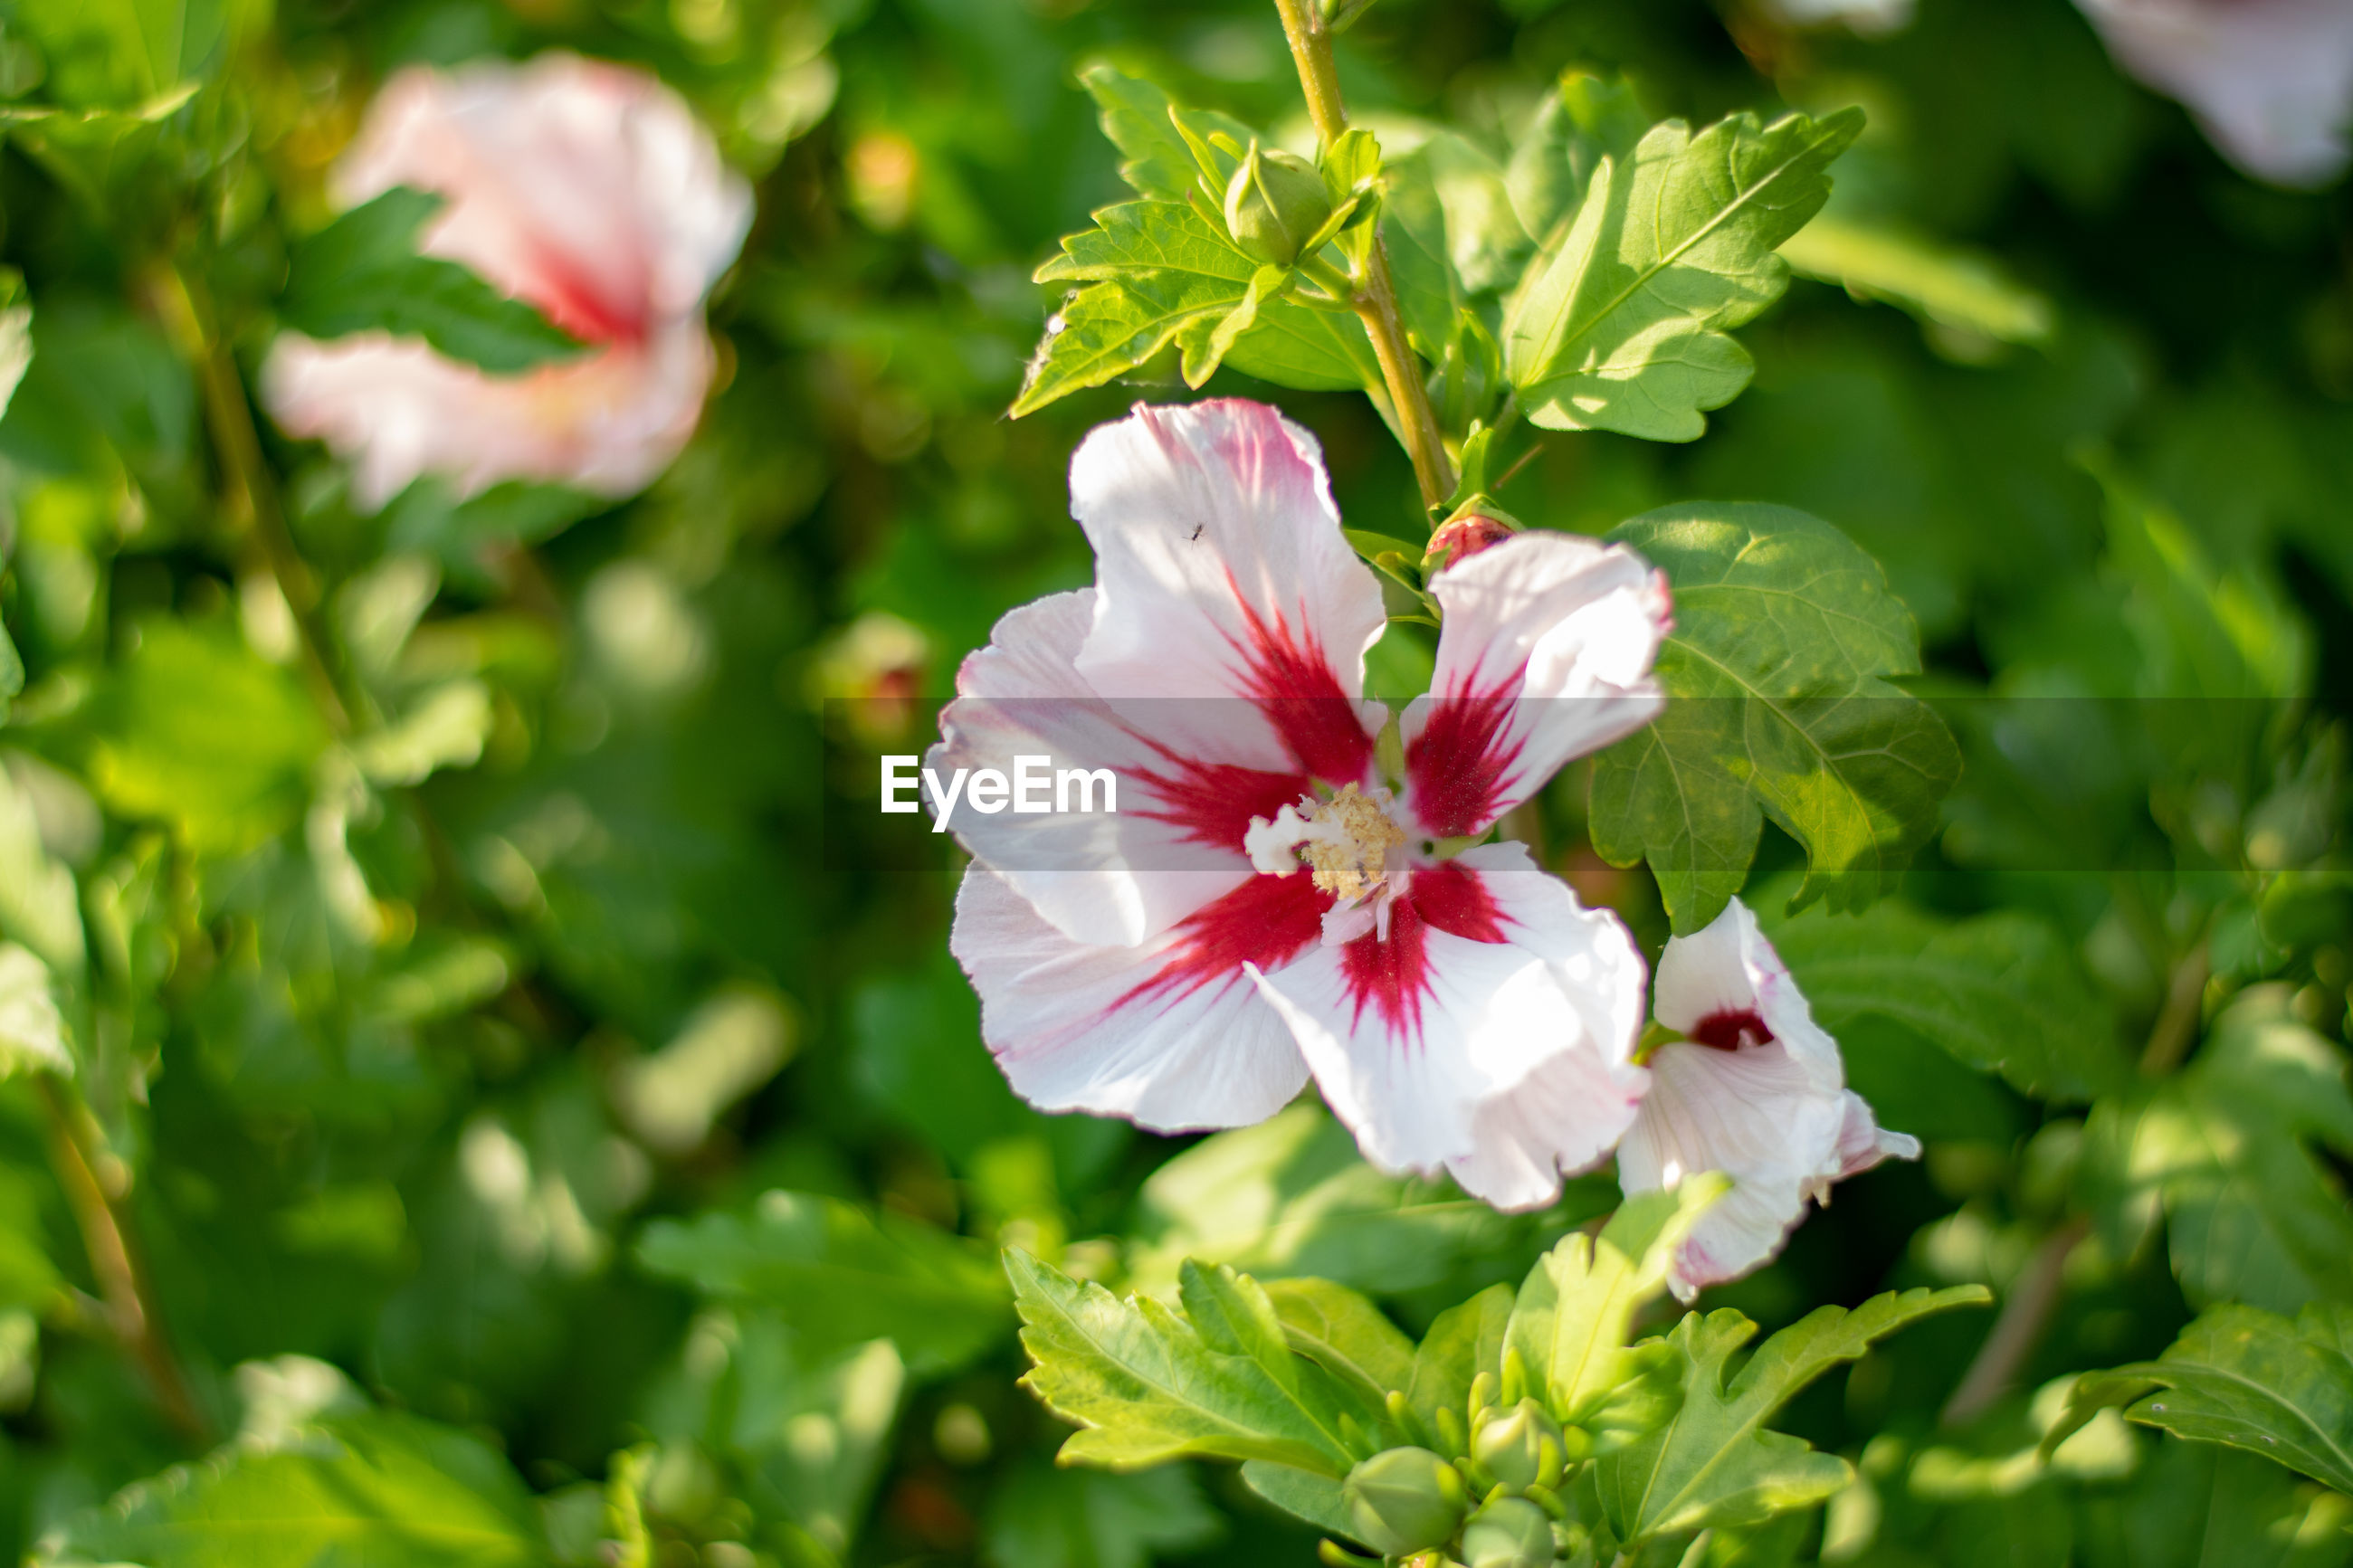 CLOSE-UP OF PINK WHITE FLOWERING PLANT